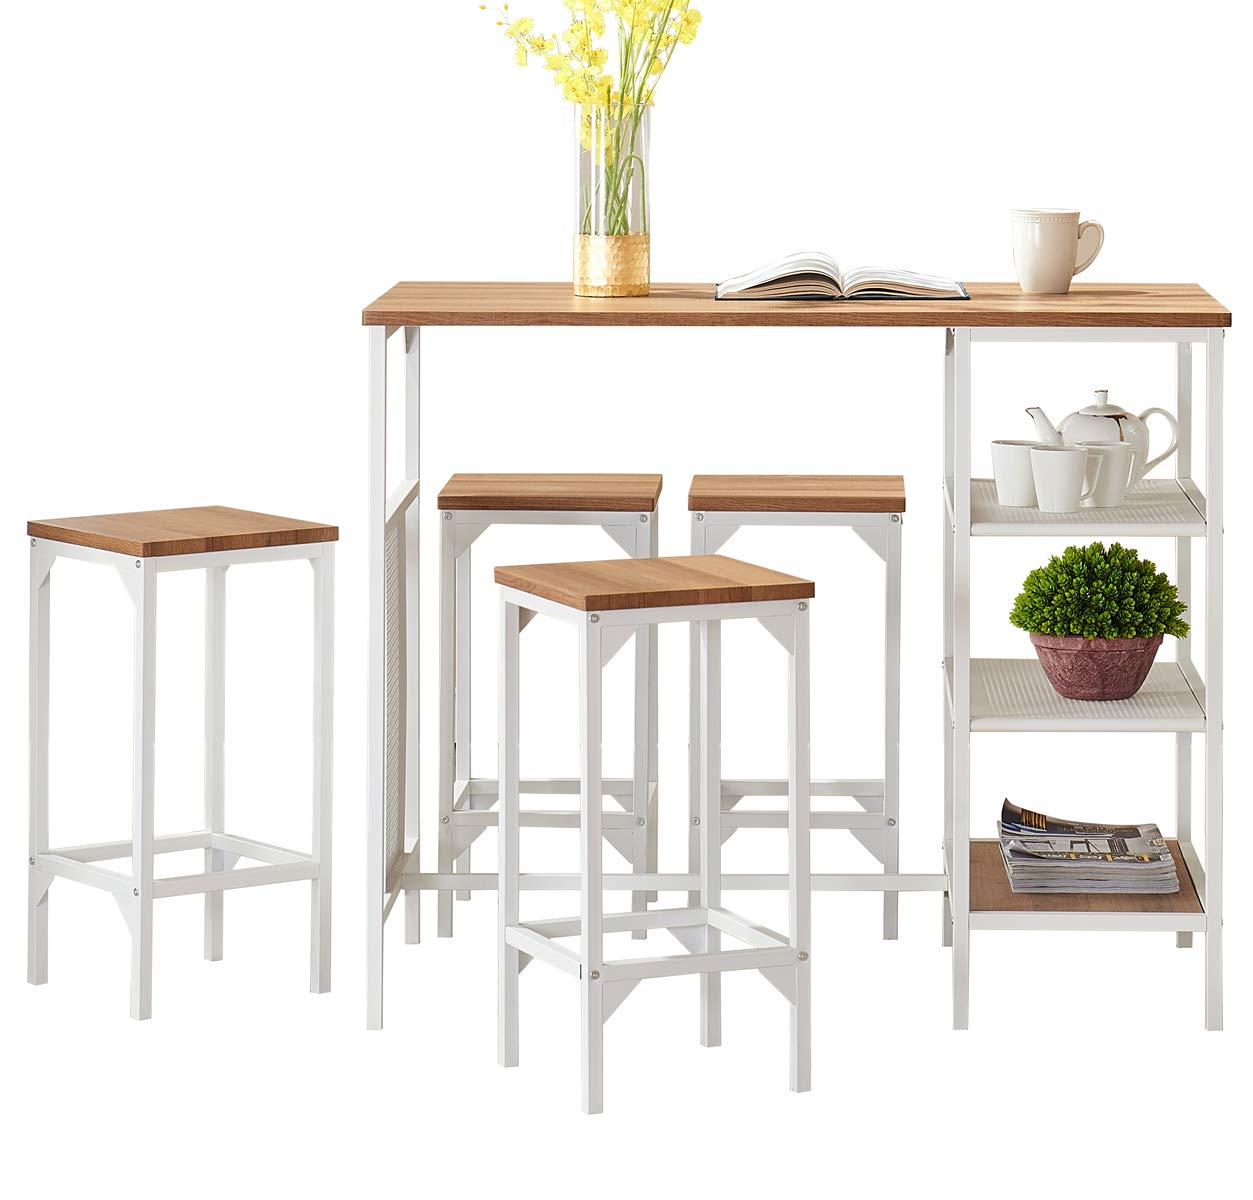 O&K FURNITURE 5-Piece Dining Room Bar Table Set, Modern Industrial Bistro Restaurant Dining Table and Stool Set, Home Kitchen Furniture, Oak Finish by O&K FURNITURE